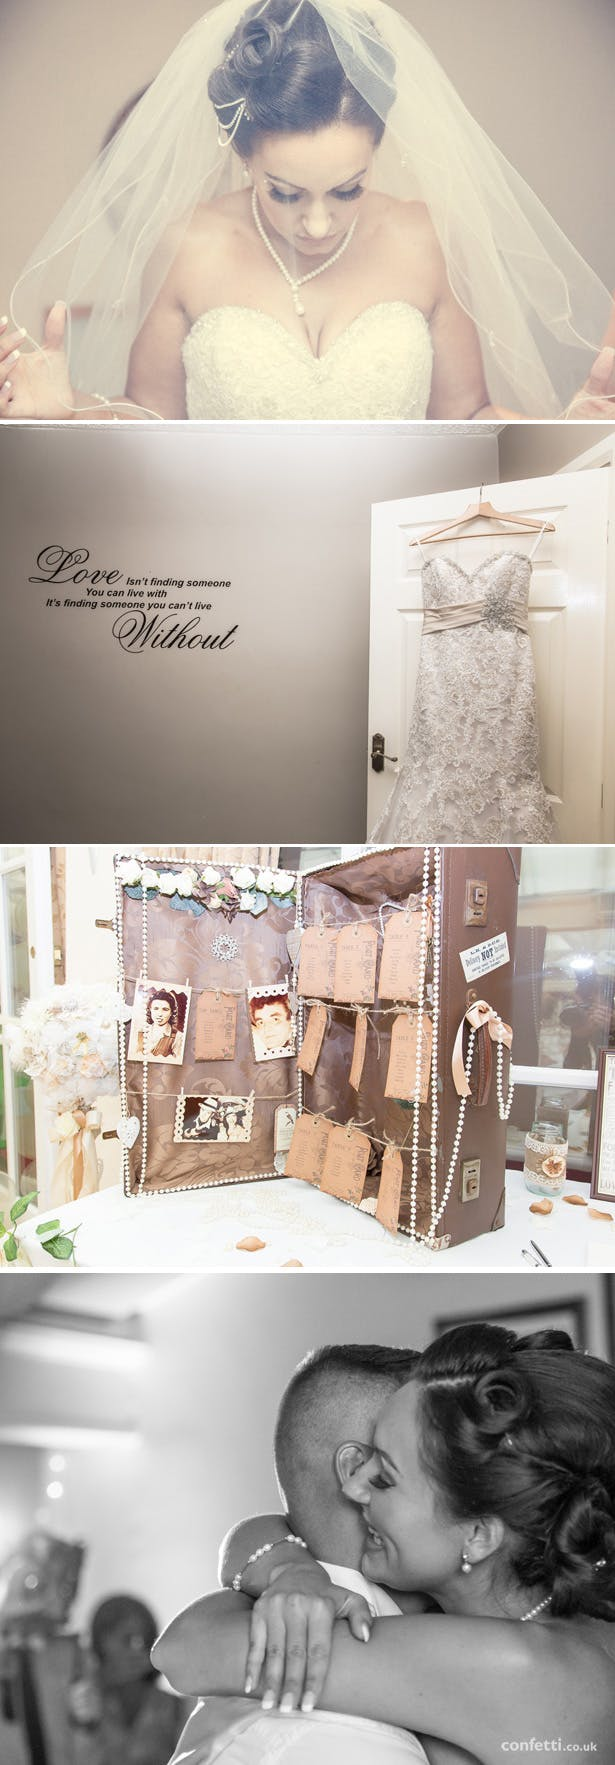 Becki and Rob's Vintage Inspired Real Wedding | Confetti.co.uk